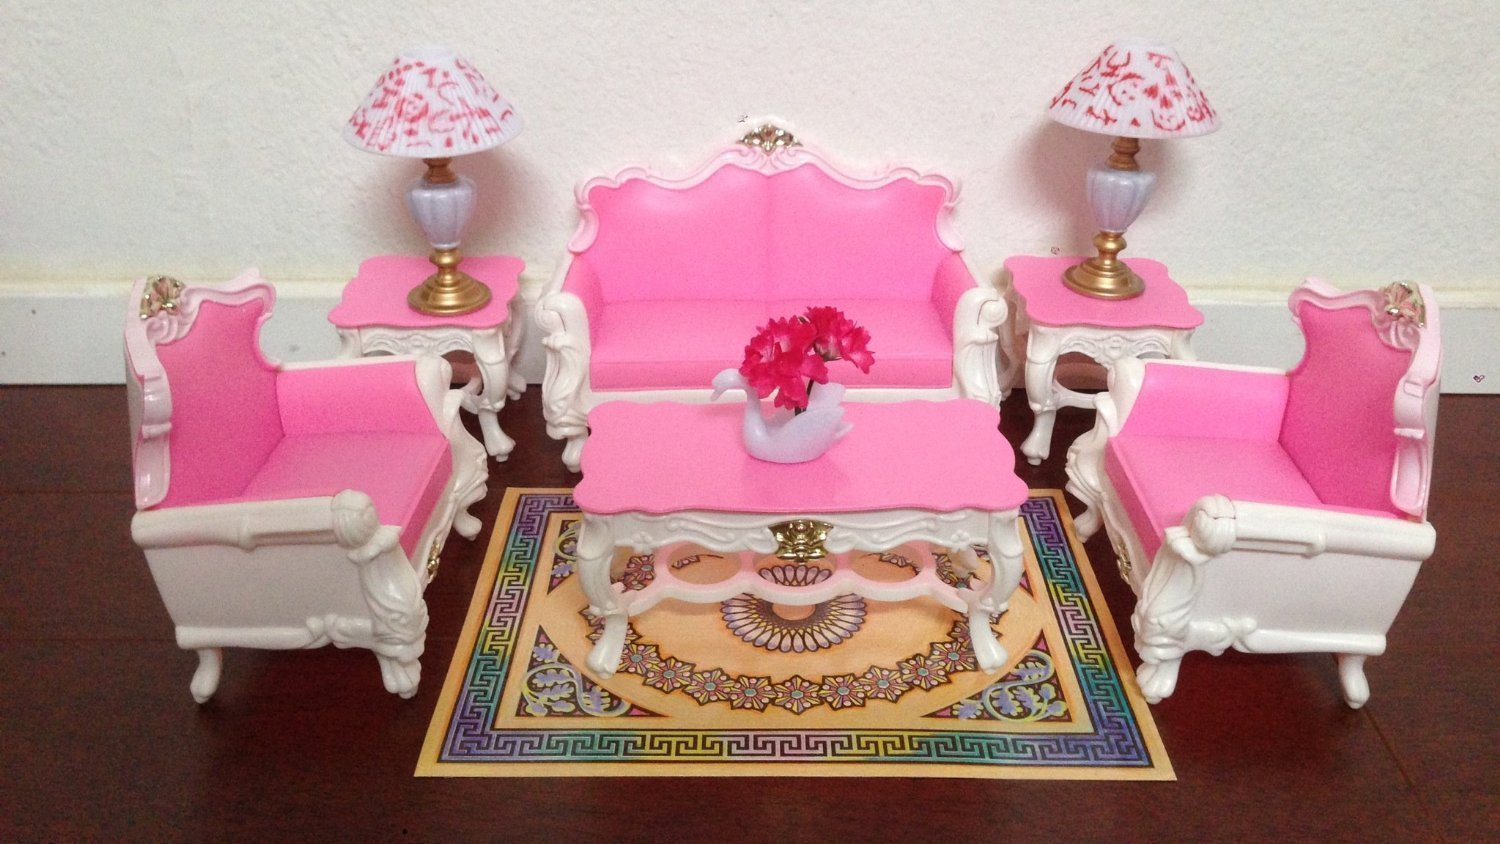 living room furniture amazon. Amazon com  Gloria Barbie Sized Deluxe Living Room Furniture Accessories Playset Toys Games